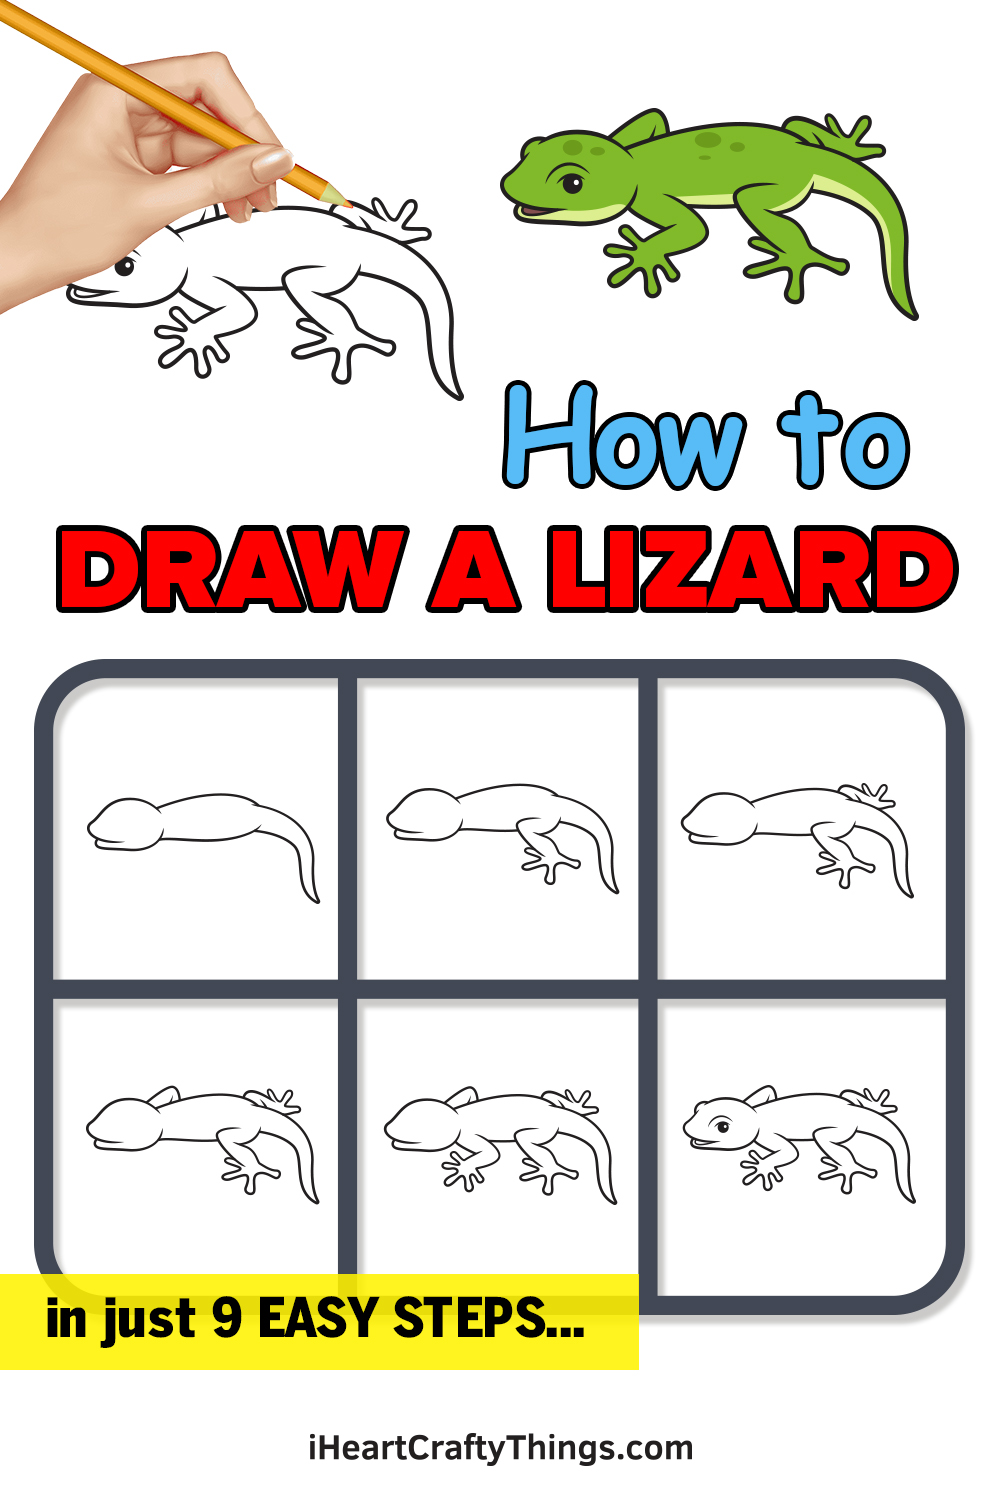 how to draw a lizard in 9 easy steps